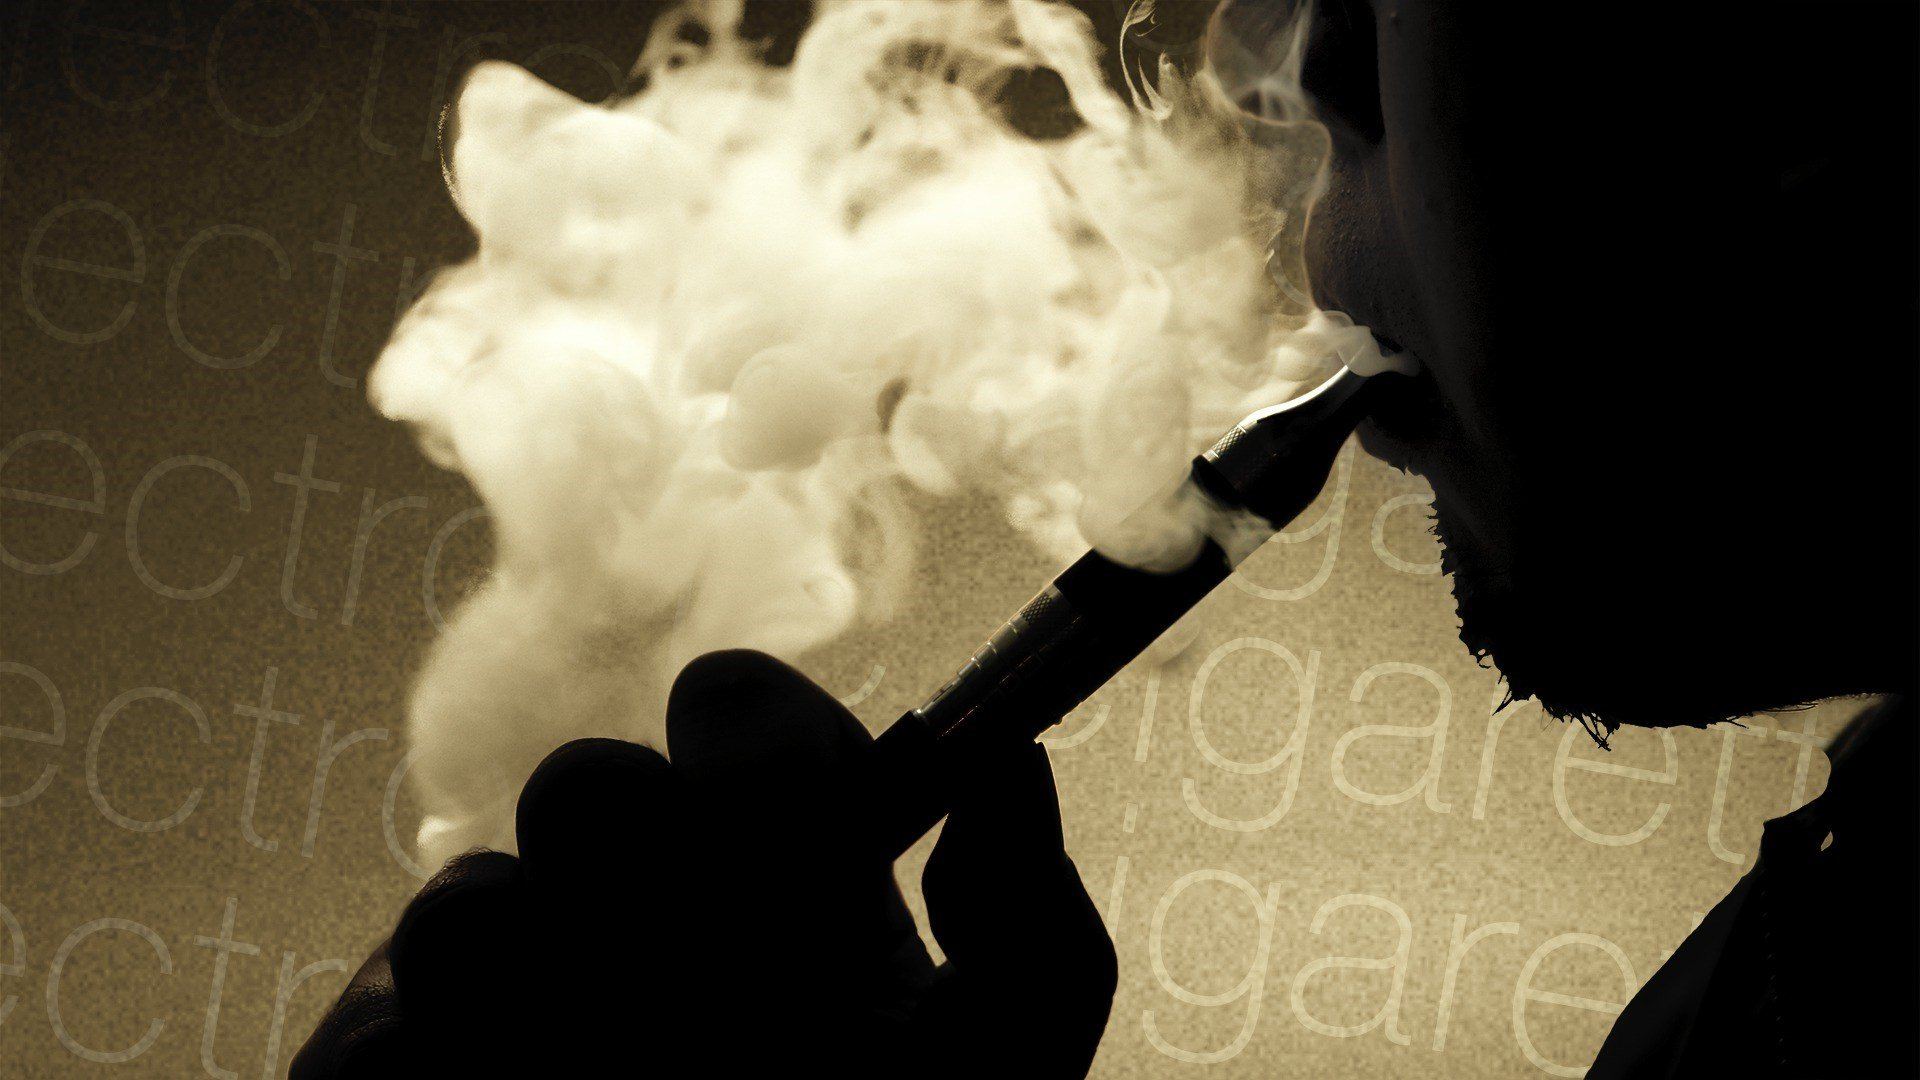 New York State Bans Vaping Where Cigarettes Already Prohibited